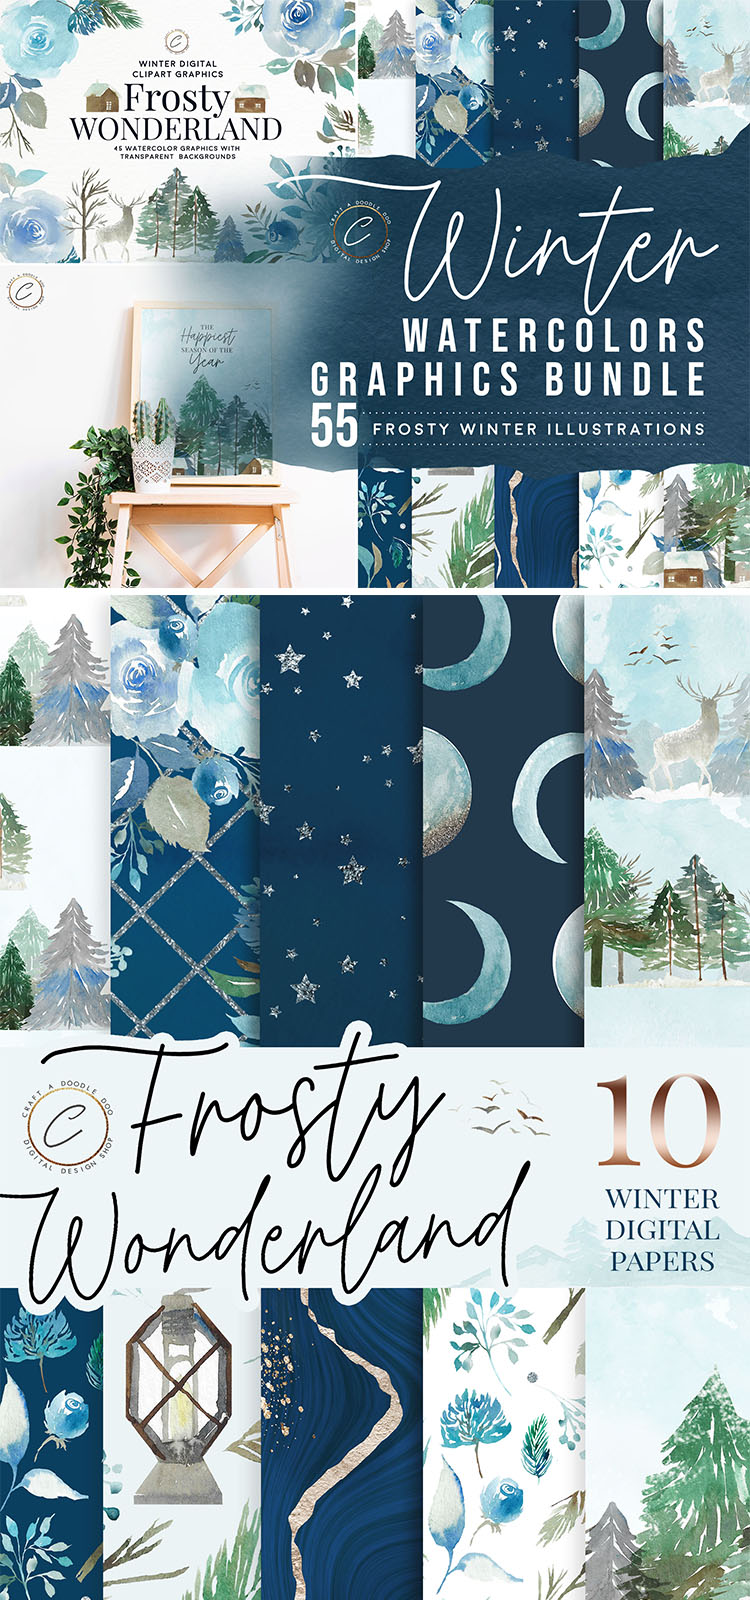 Free Winter Digital Paper Pack by Craft A Doodle Doo, Winter Wonderland scrapbooking paper set, blue watercolor patterns and backgrounds, watercolor texture pack, floral watercolor clipart, winter watercolor clipart set